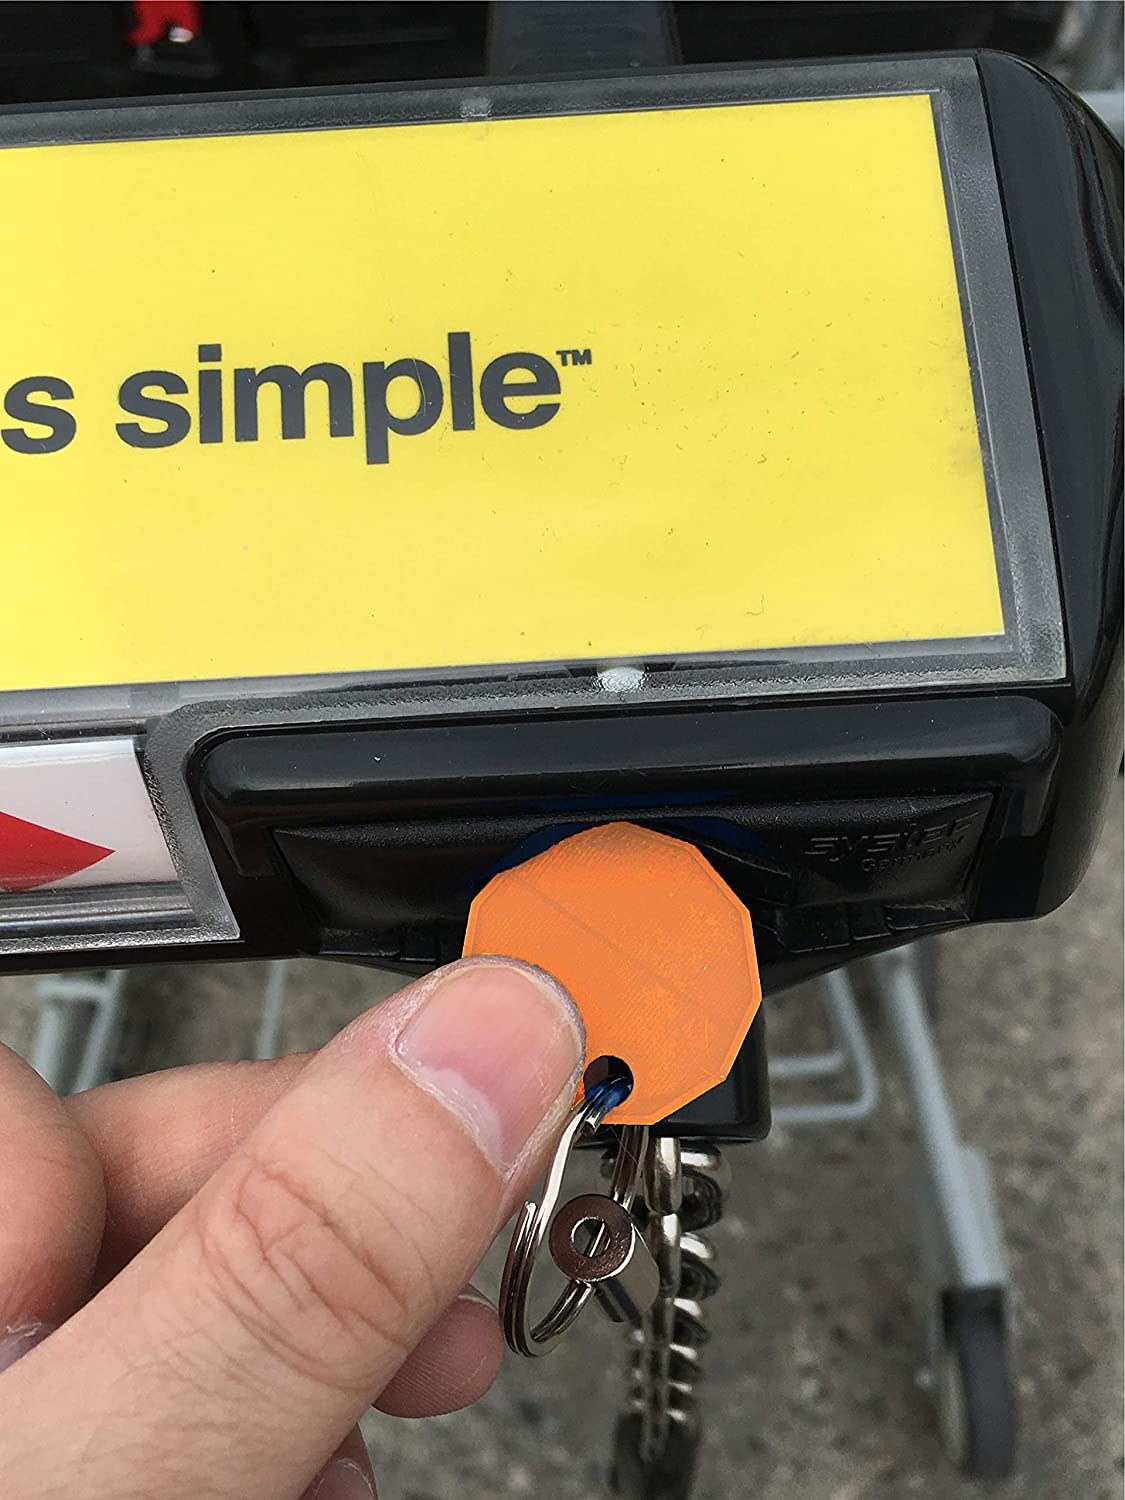 person using the coin to release a shopping cart